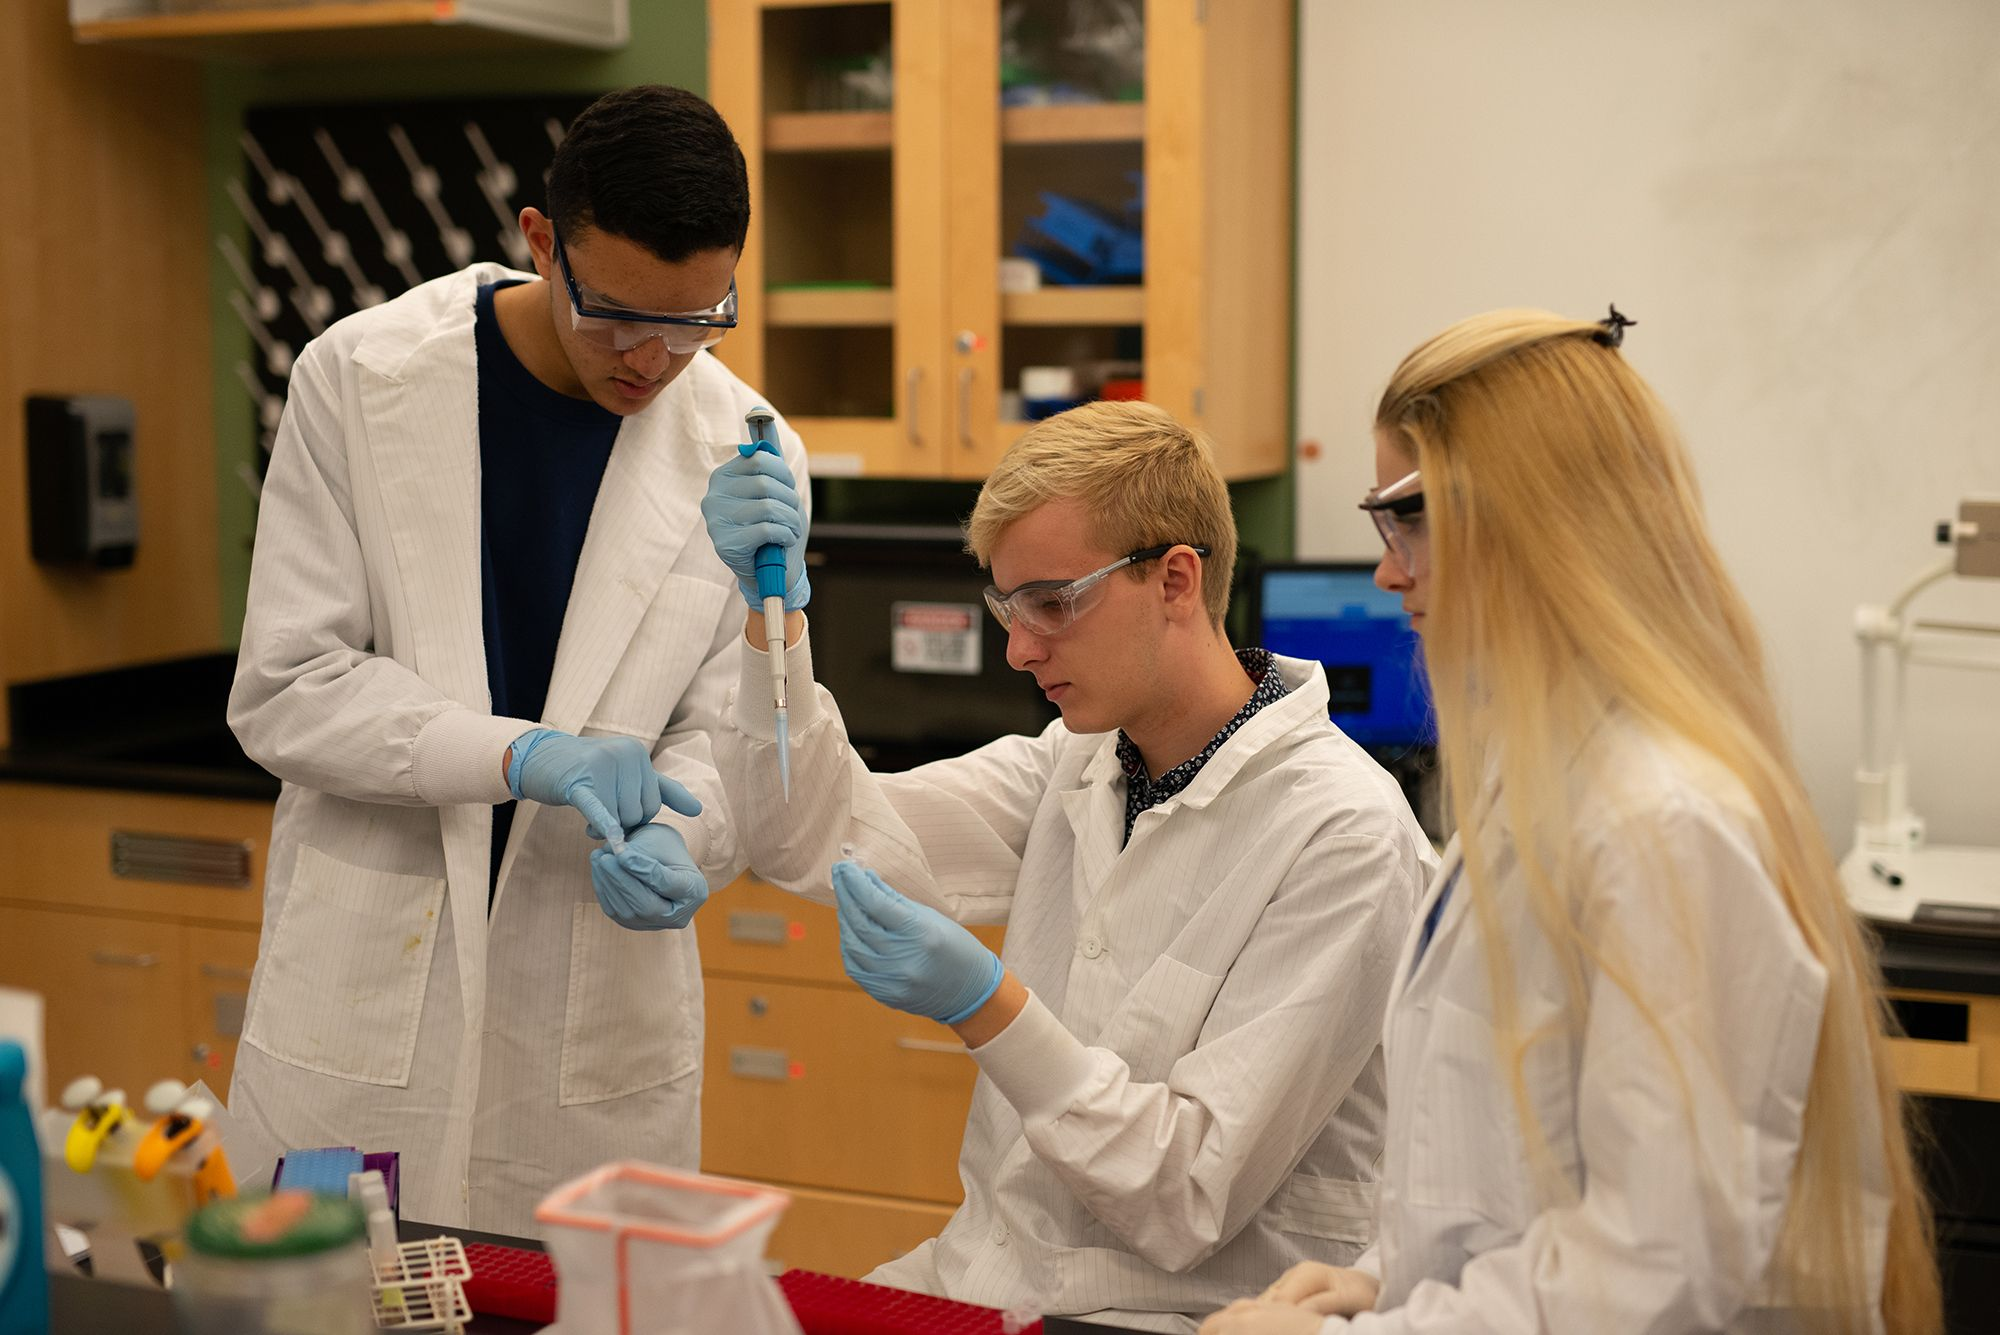 Students with lab coats, gloves, and protective goggles use a dropper to take samples.